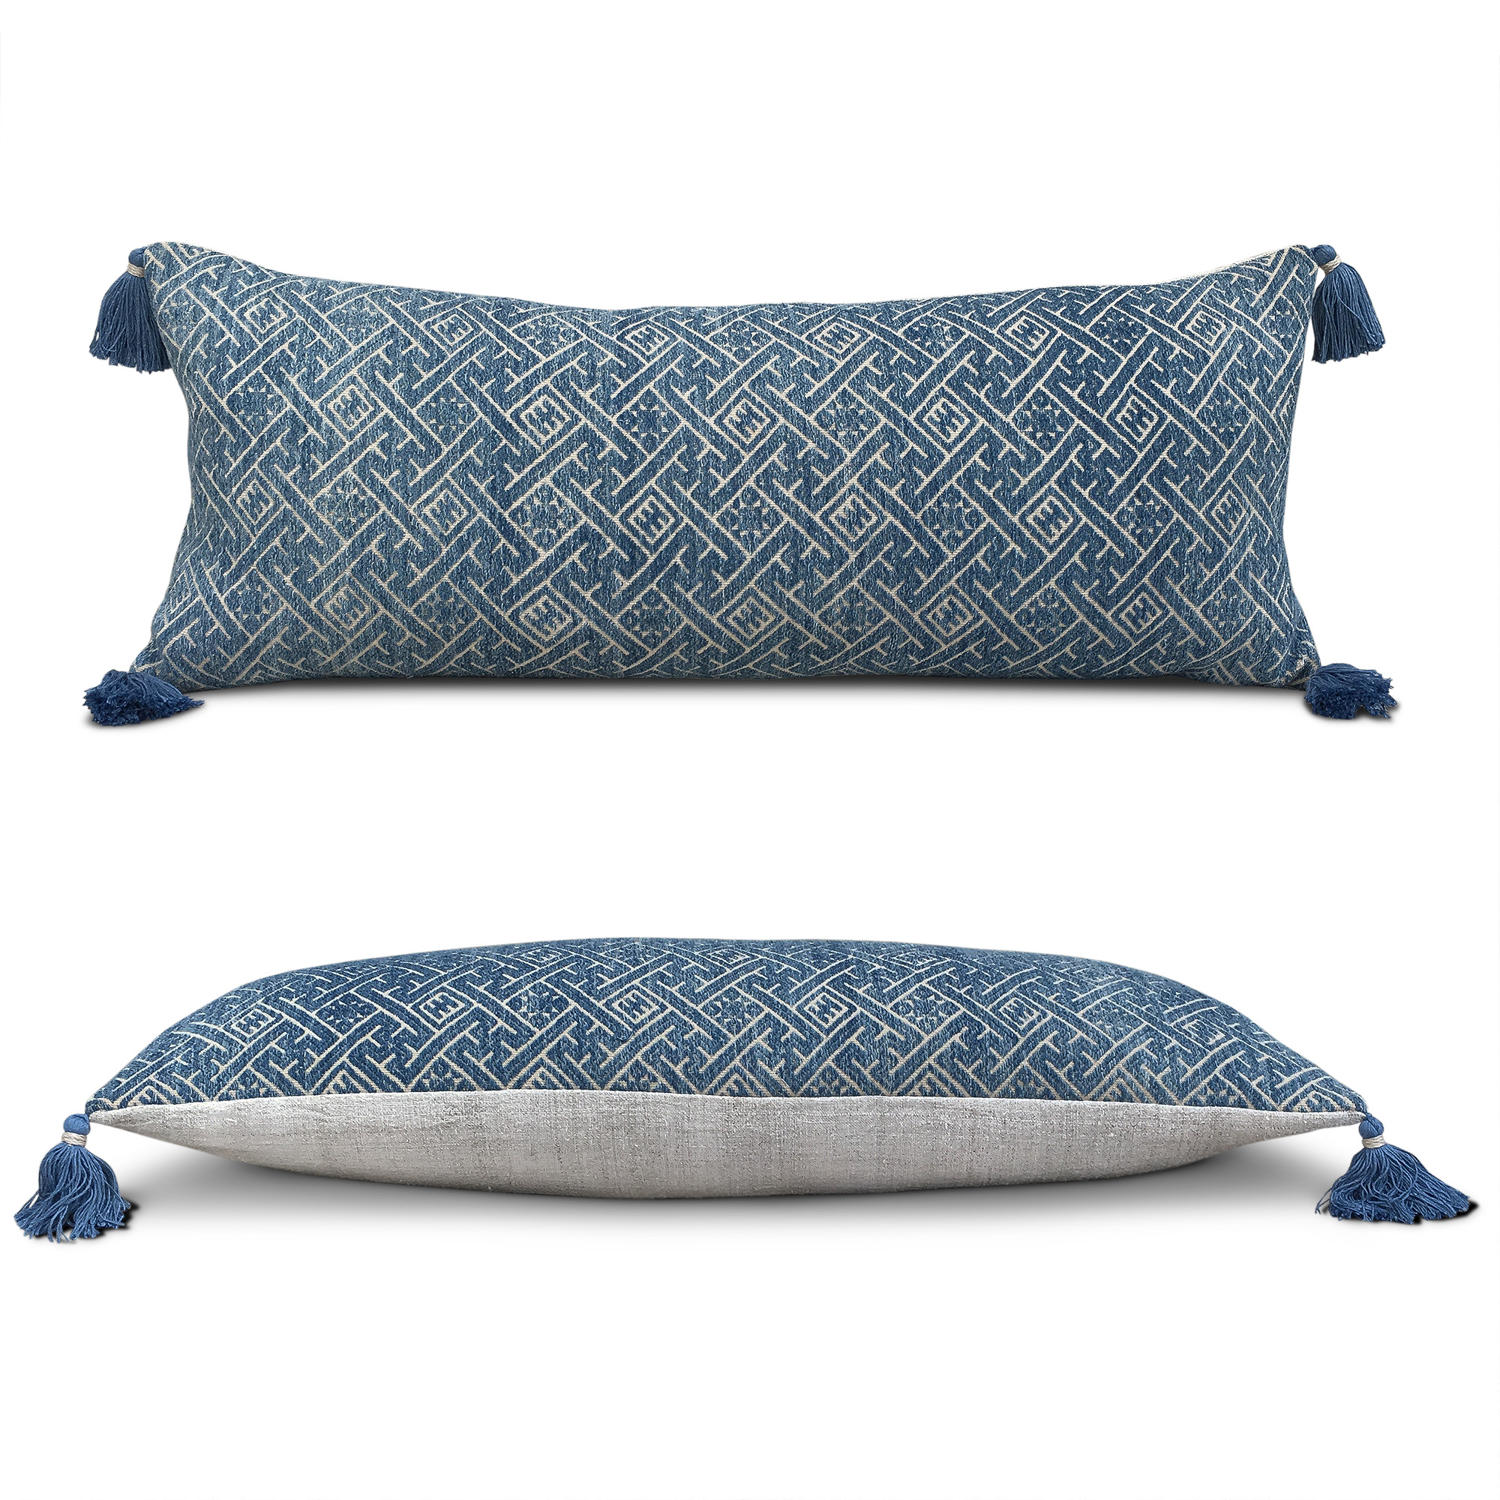 Long Indigo Zhuang Cushion with Tassels